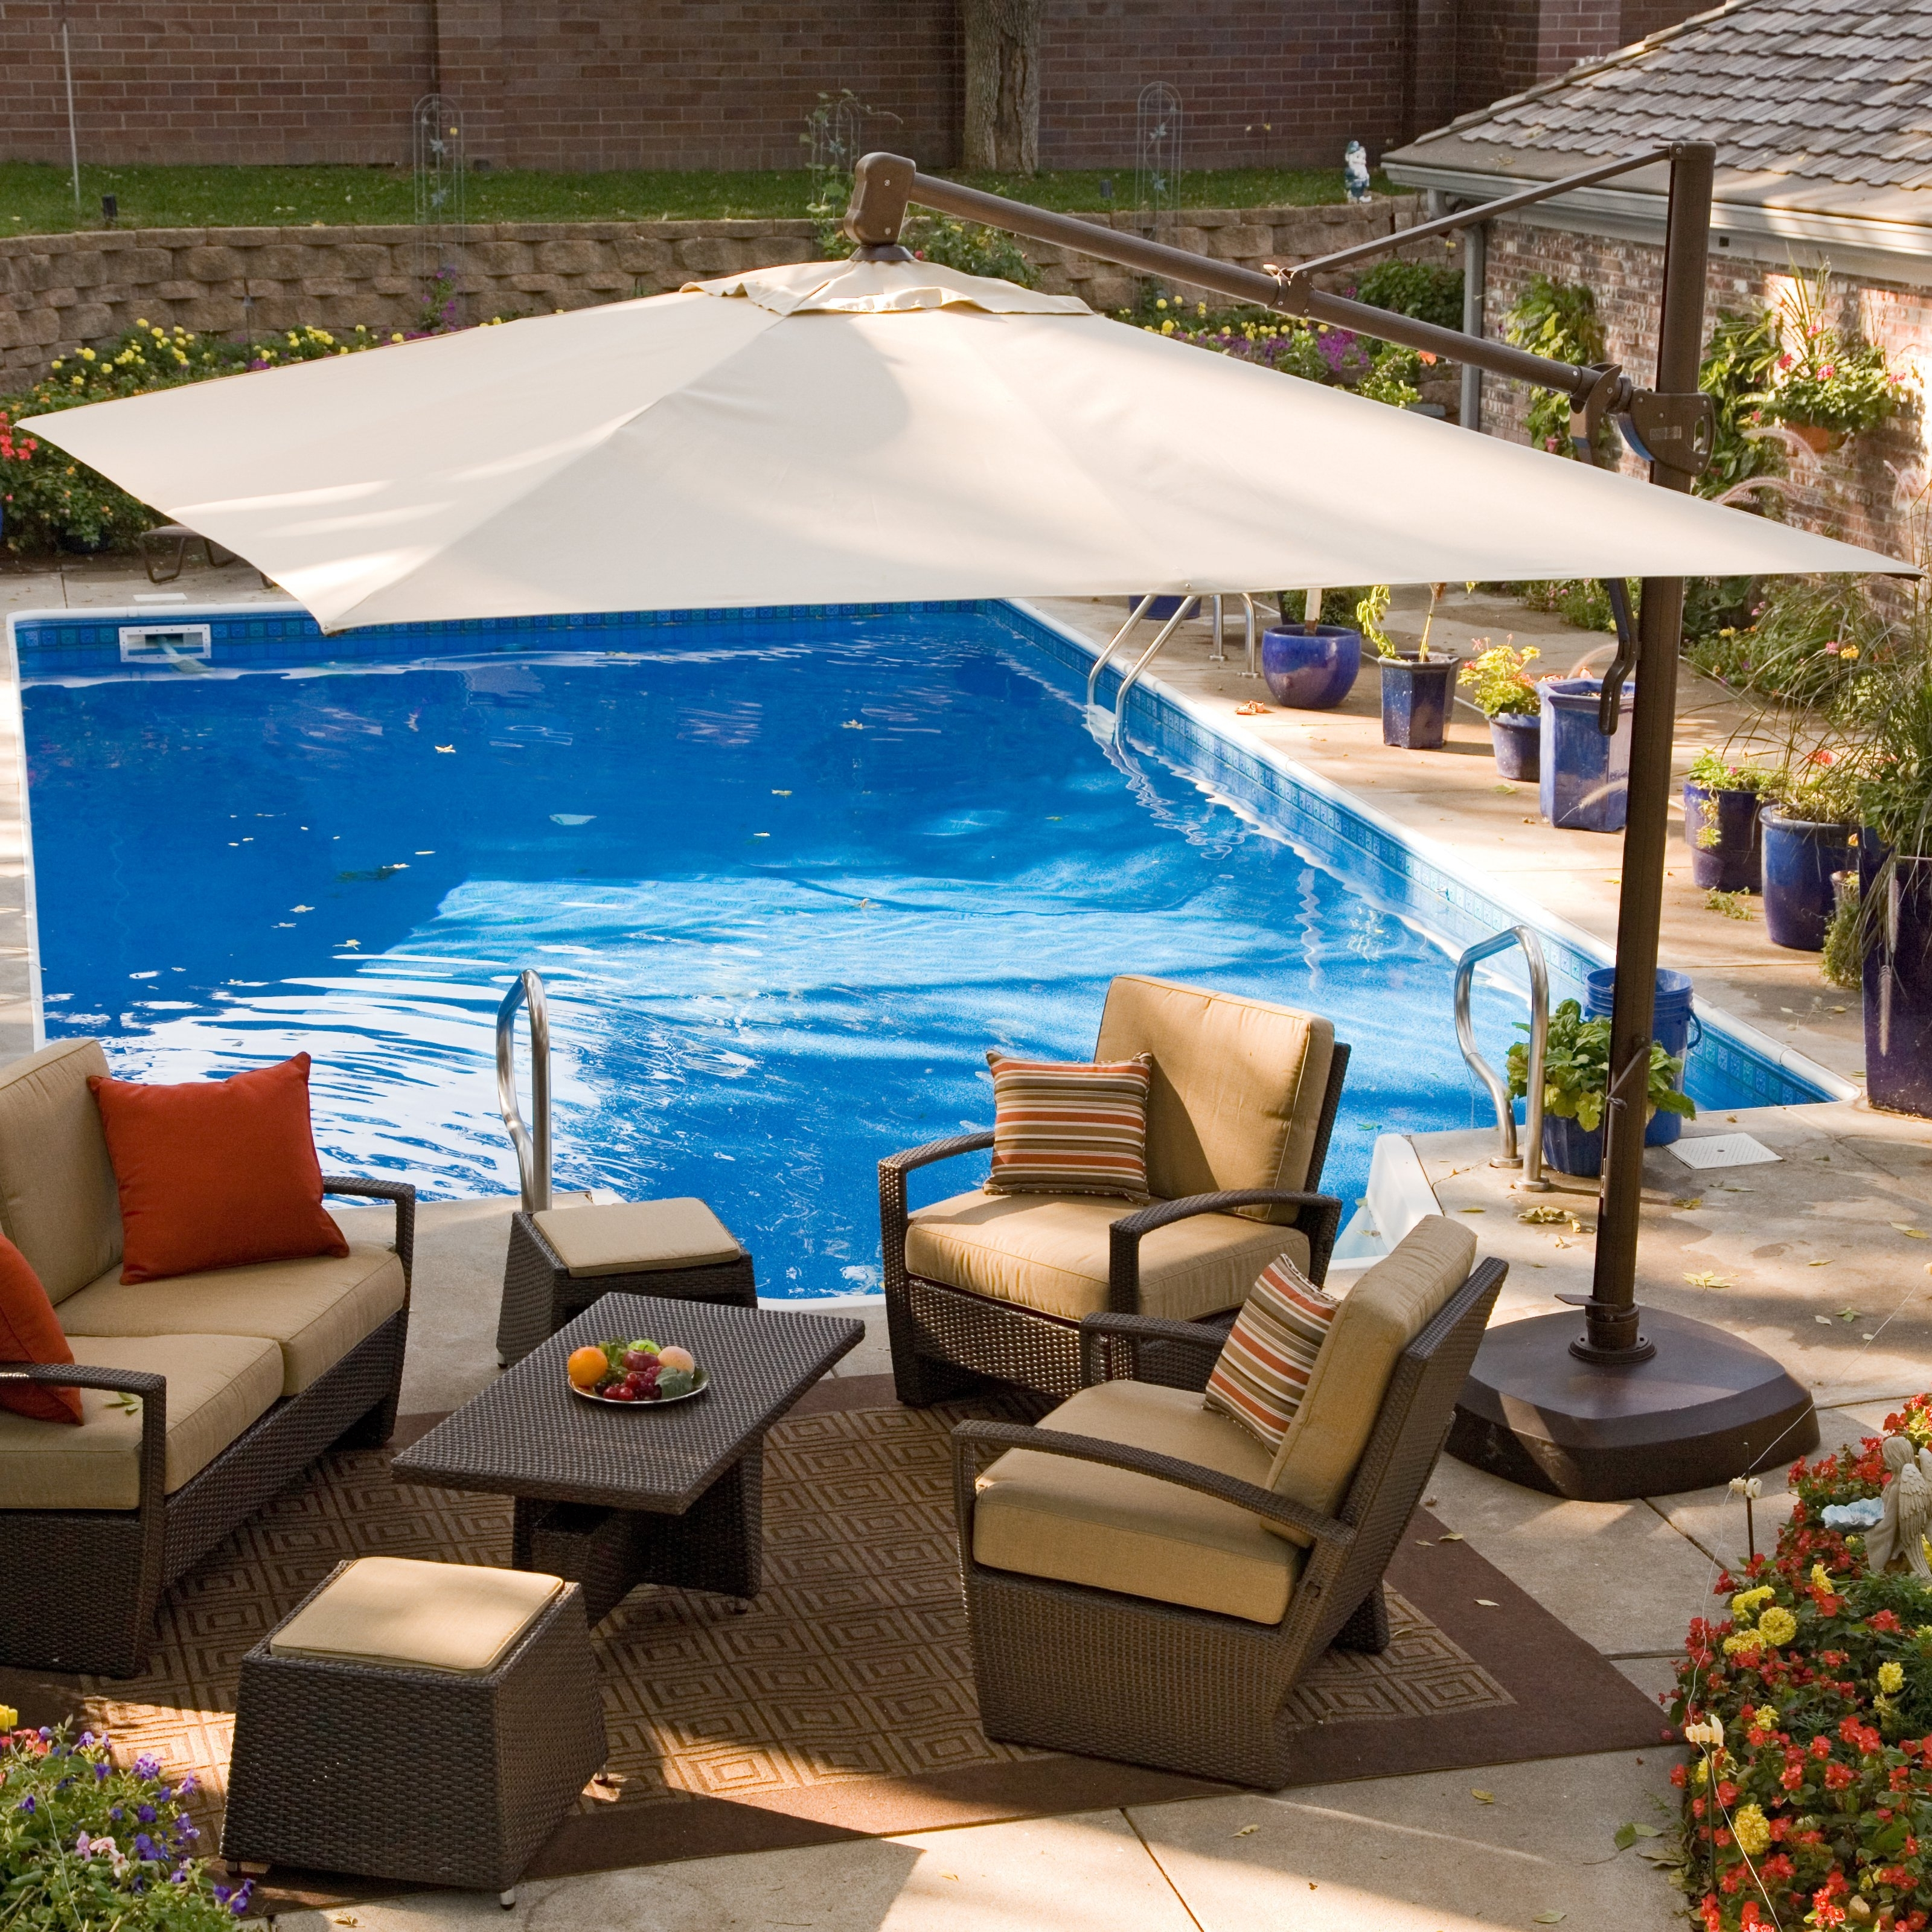 Famous Heavy Duty Patio Umbrellas Pertaining To Easylovely Heavy Duty Rectangular Patio Umbrella F23X About Remodel (View 6 of 20)